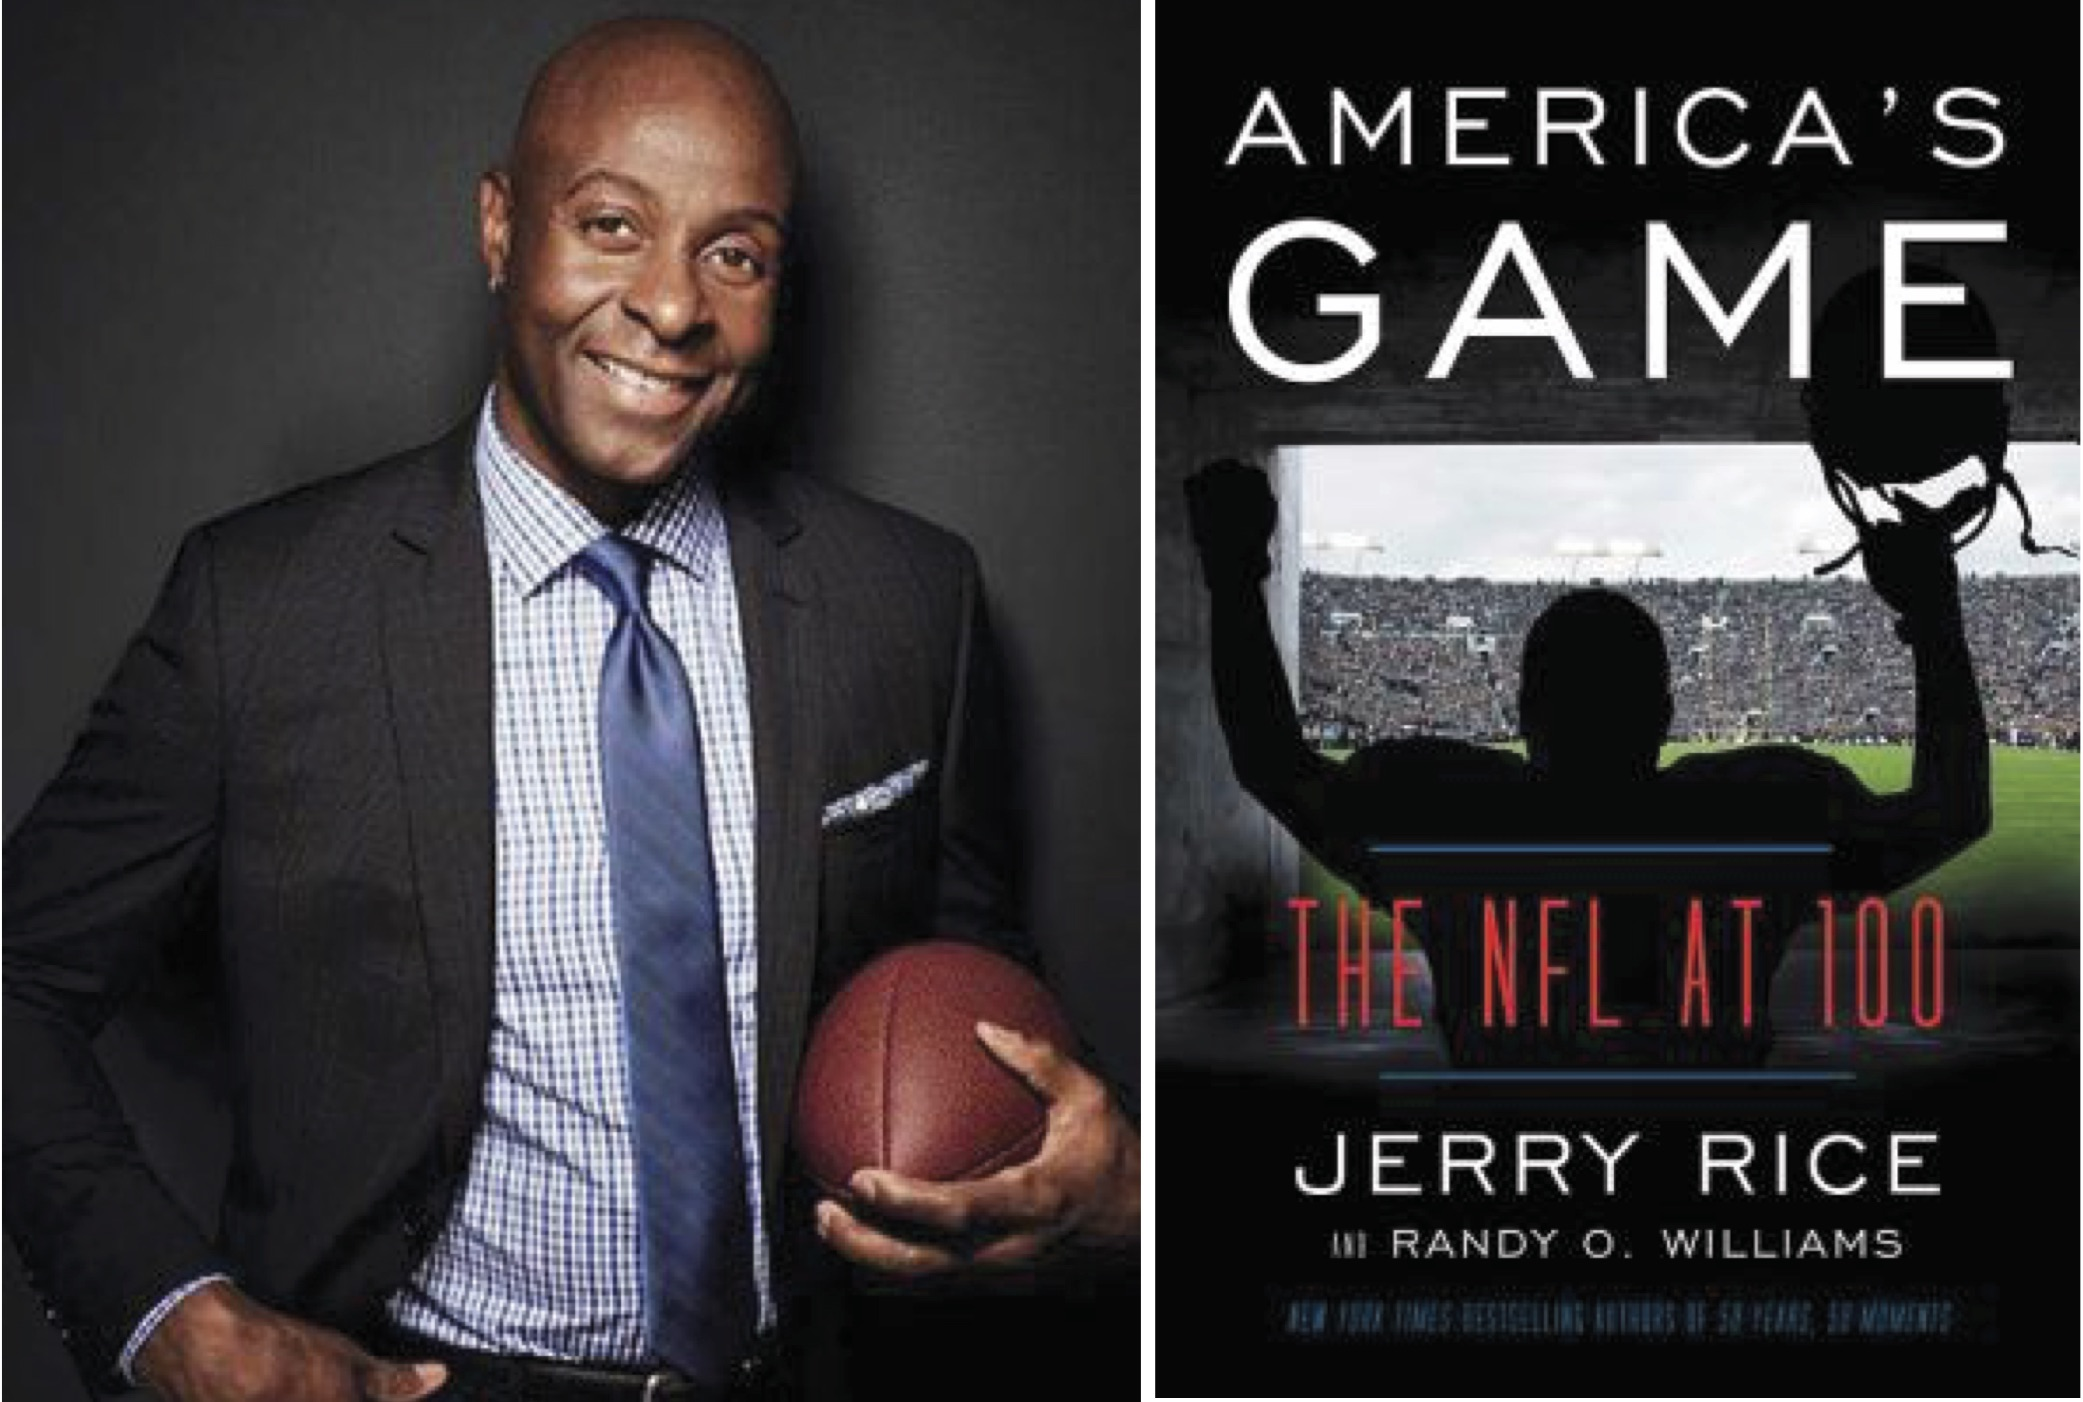 jerry rice americas game bookshop santa cruz